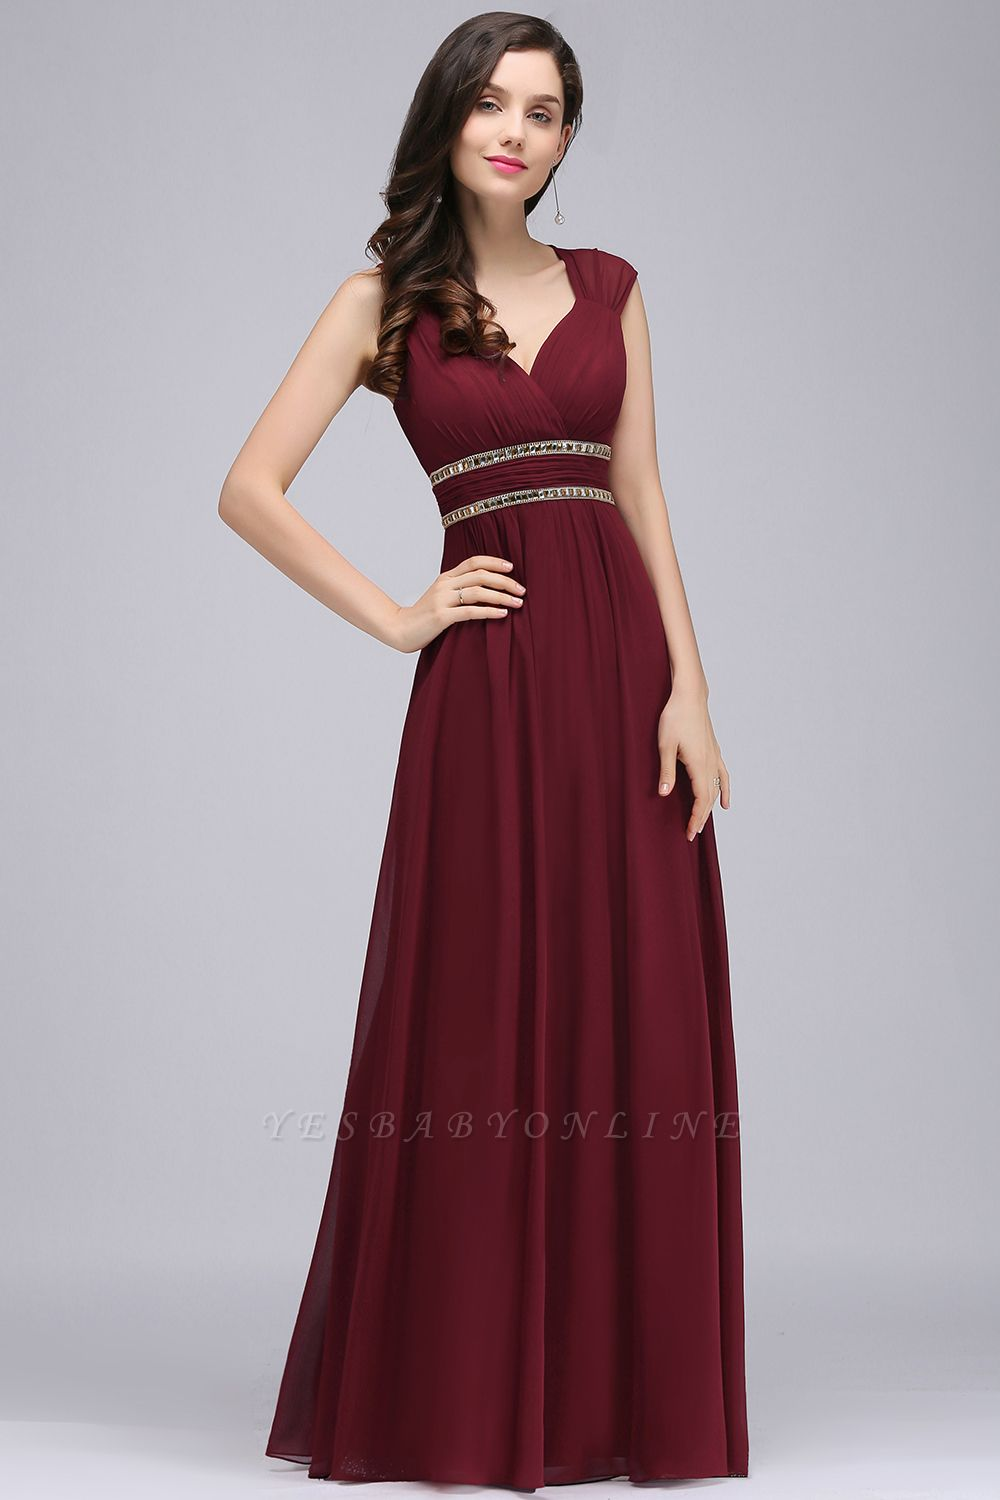 Cheap Vintage Burgundy Cap Sleeve Chiffon Long Evening Dress in Stock